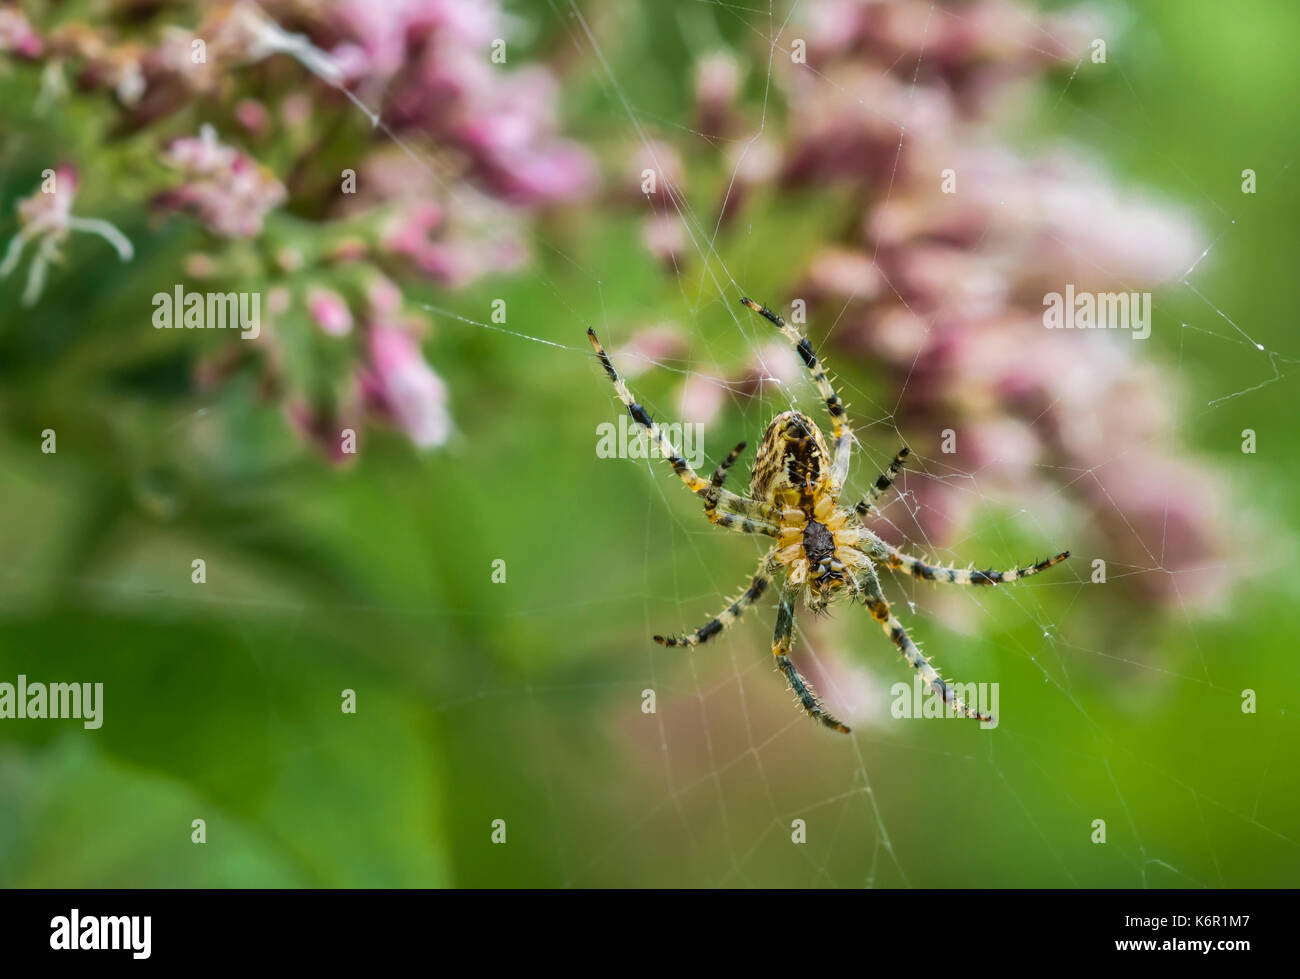 Male Garden Spider (Orb Weaver spider, Araneus Diadematus, Diadem Spider) on a web in Autumn in the UK. - Stock Image